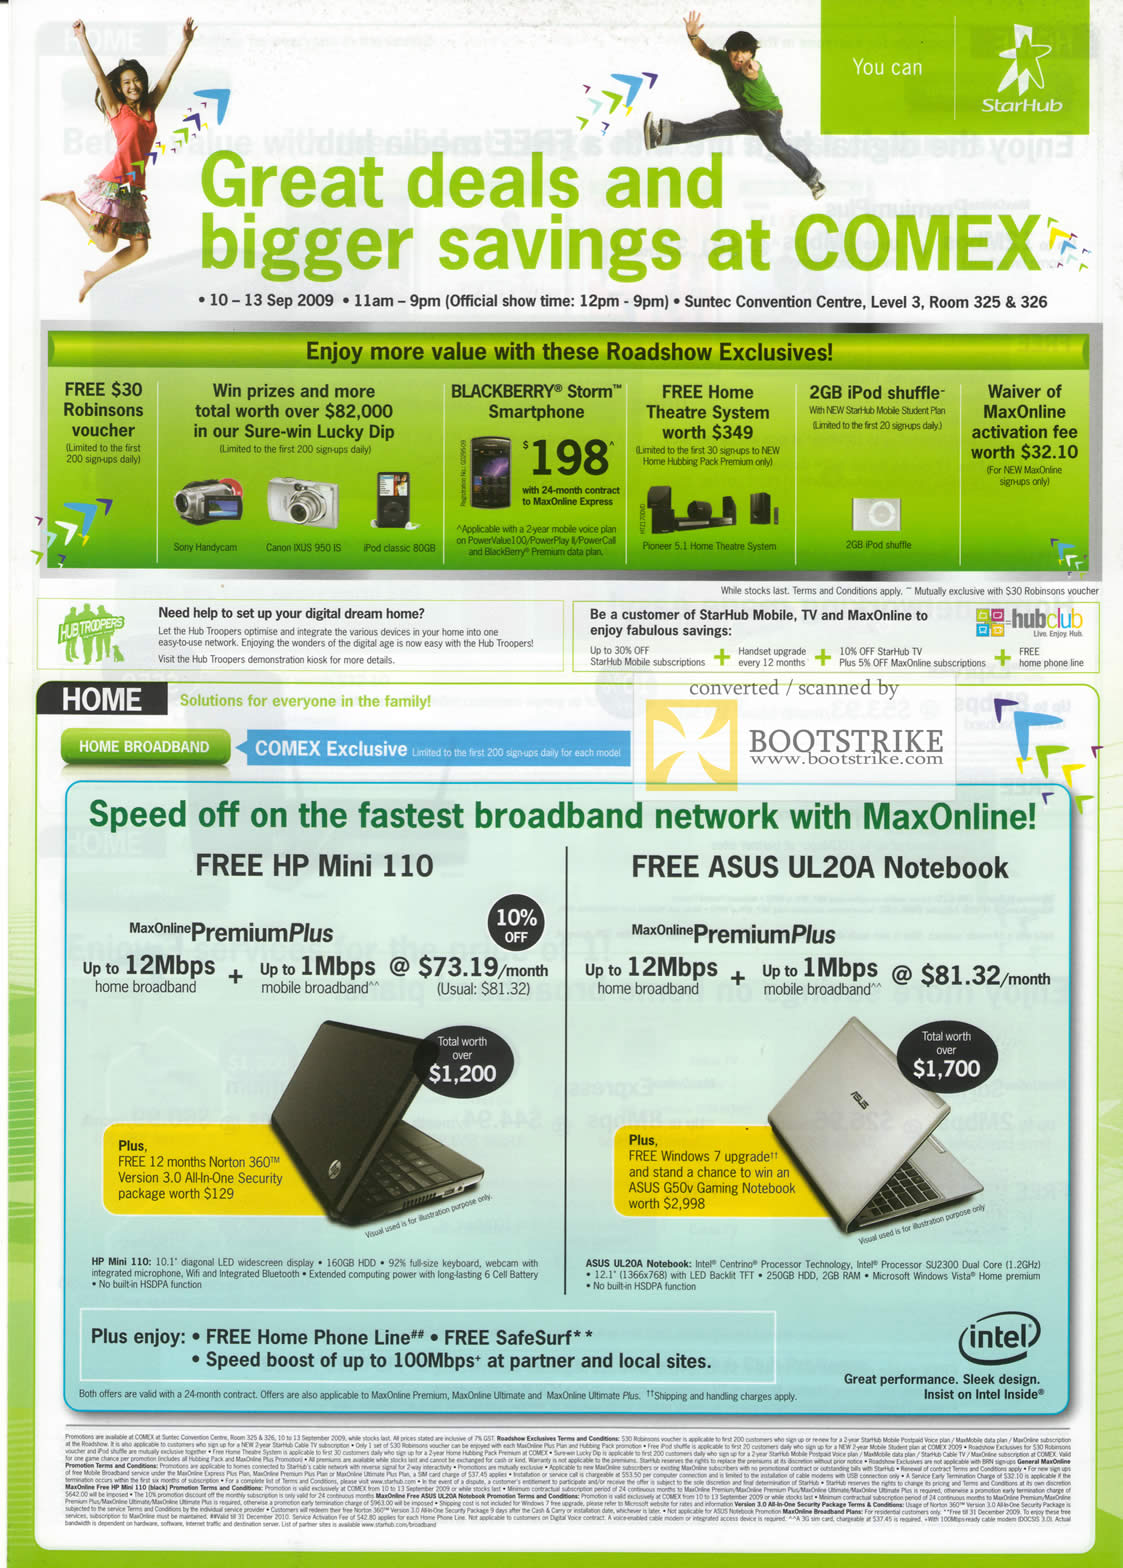 Comex 2009 price list image brochure of Starhub Home Broadband HP Mini 110 ASUS UL20A